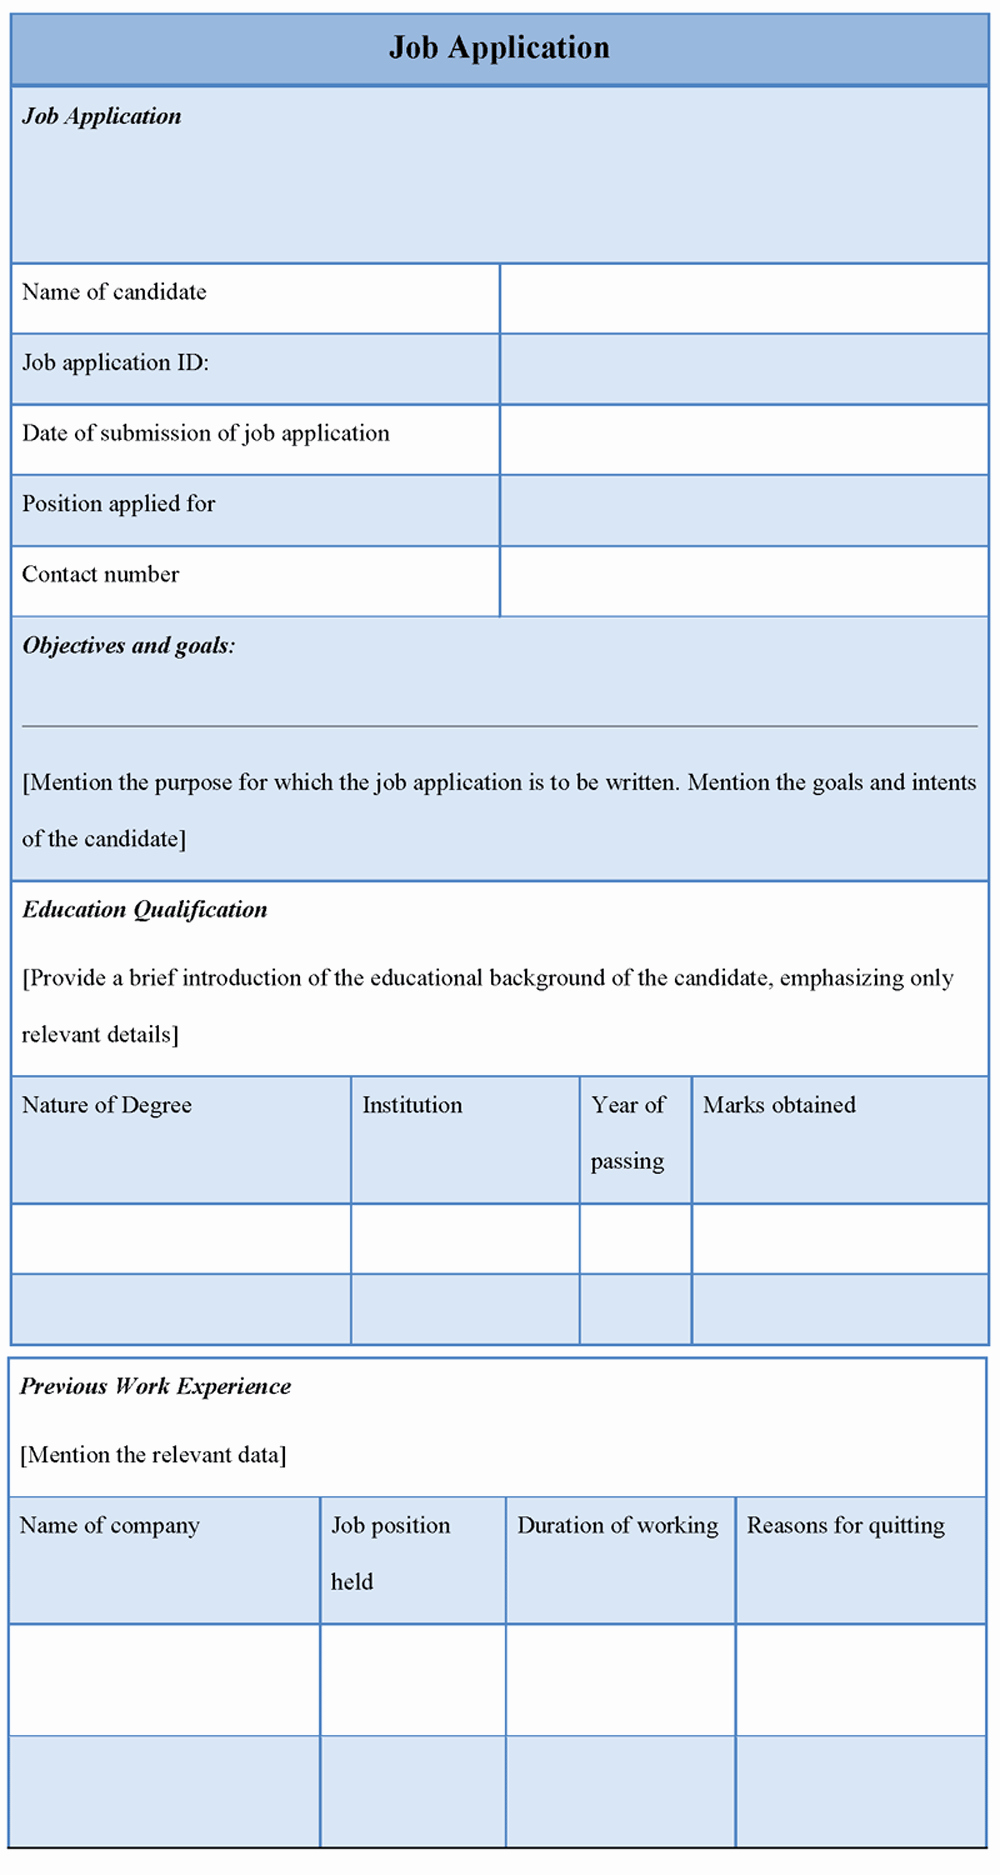 Job Application Template Microsoft Word Beautiful Best S Of Editable Employment Application Job